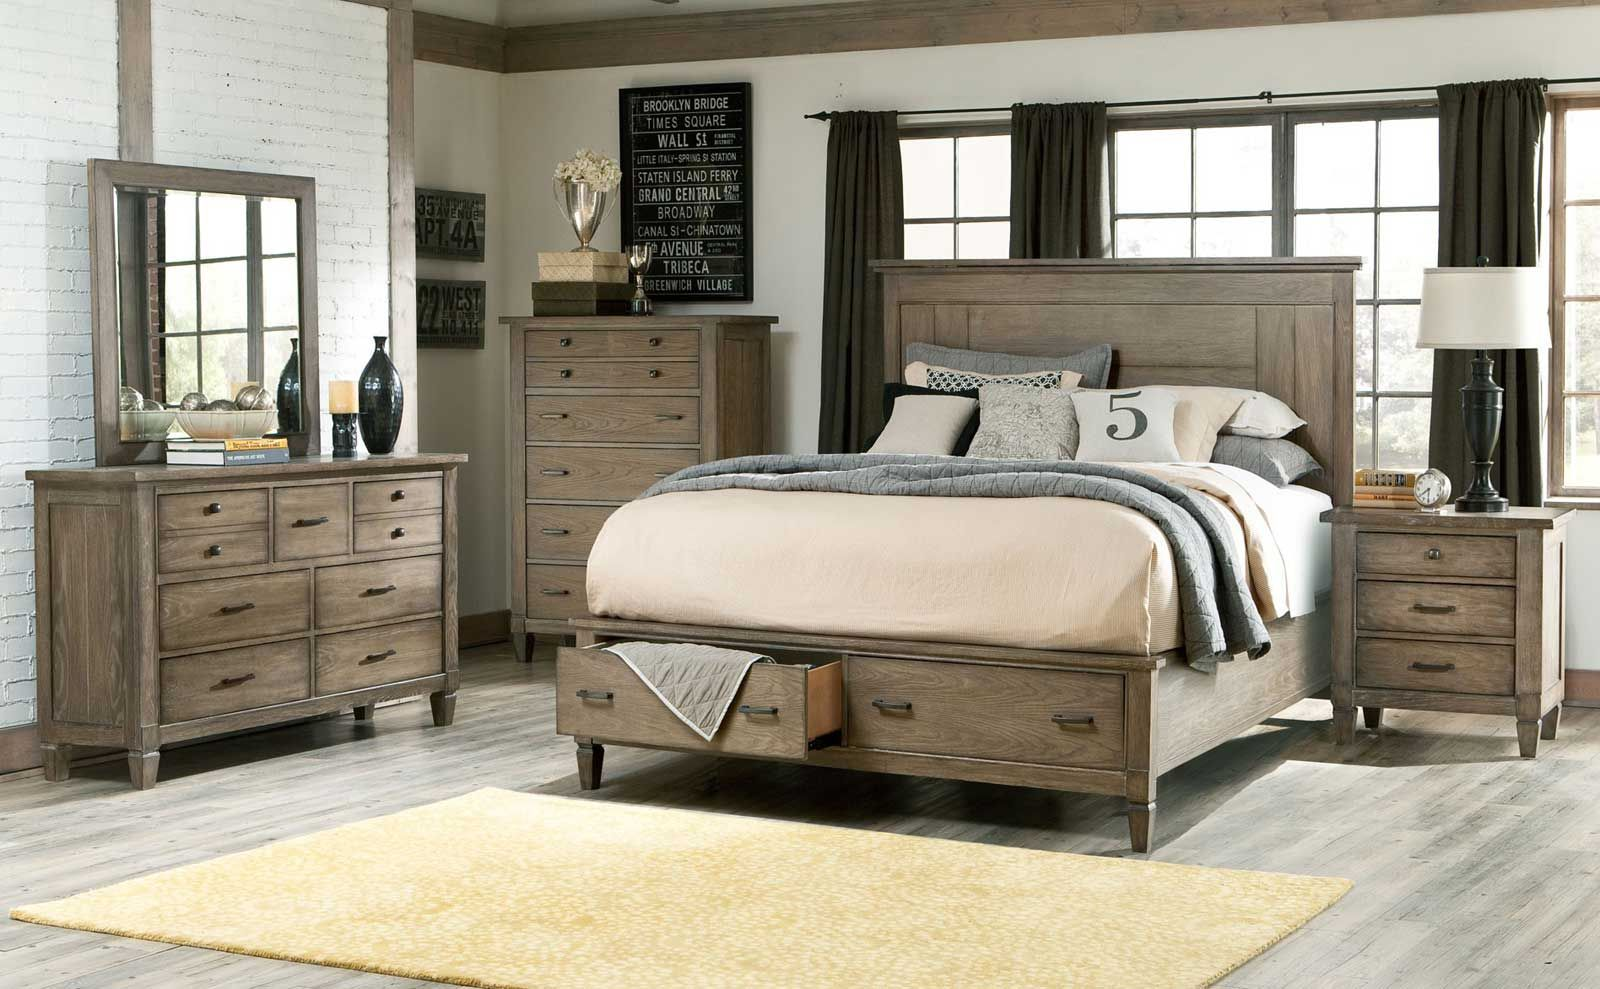 King Size Bedroom Sets image result for wood king size bedroom sets | farm house master